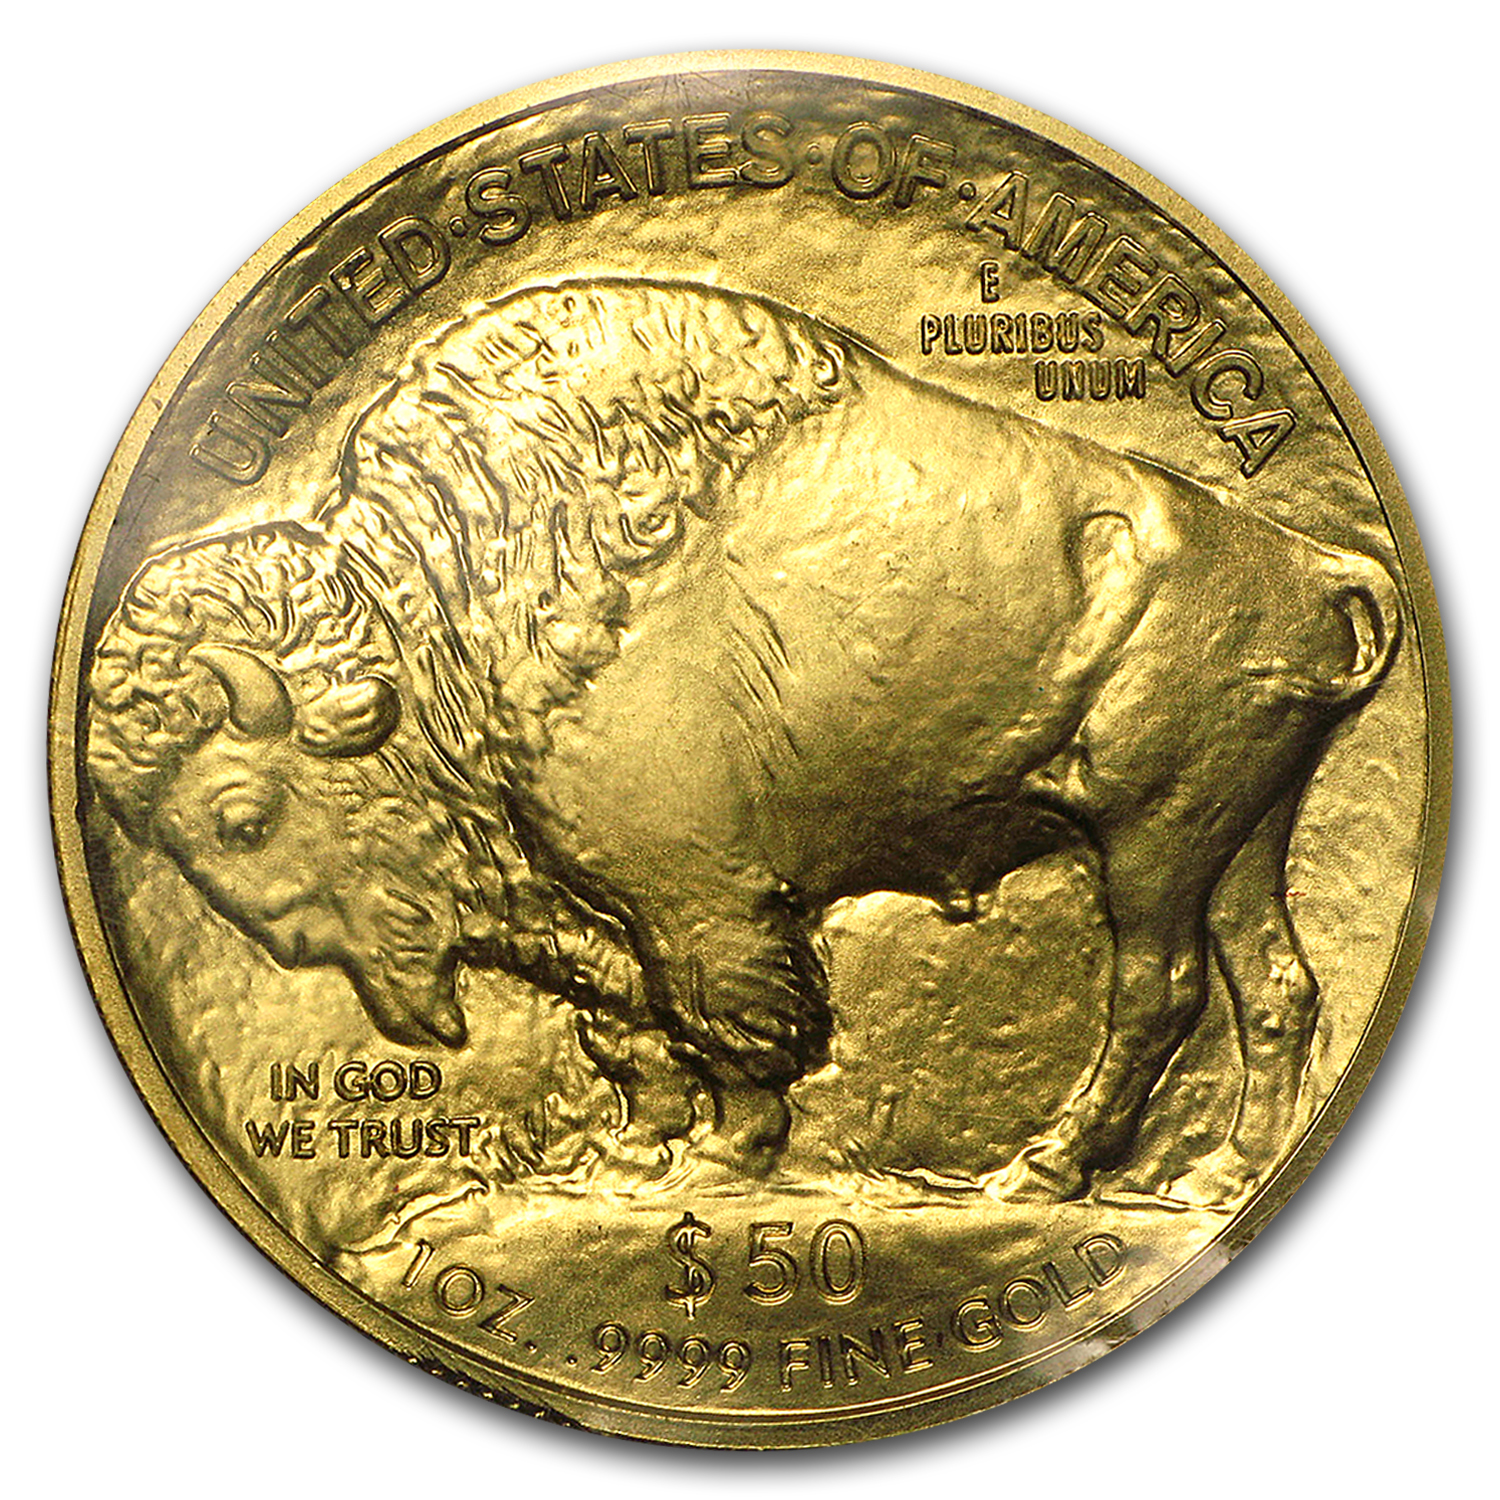 2014 1 oz Gold Buffalo - Brilliant Uncirculated